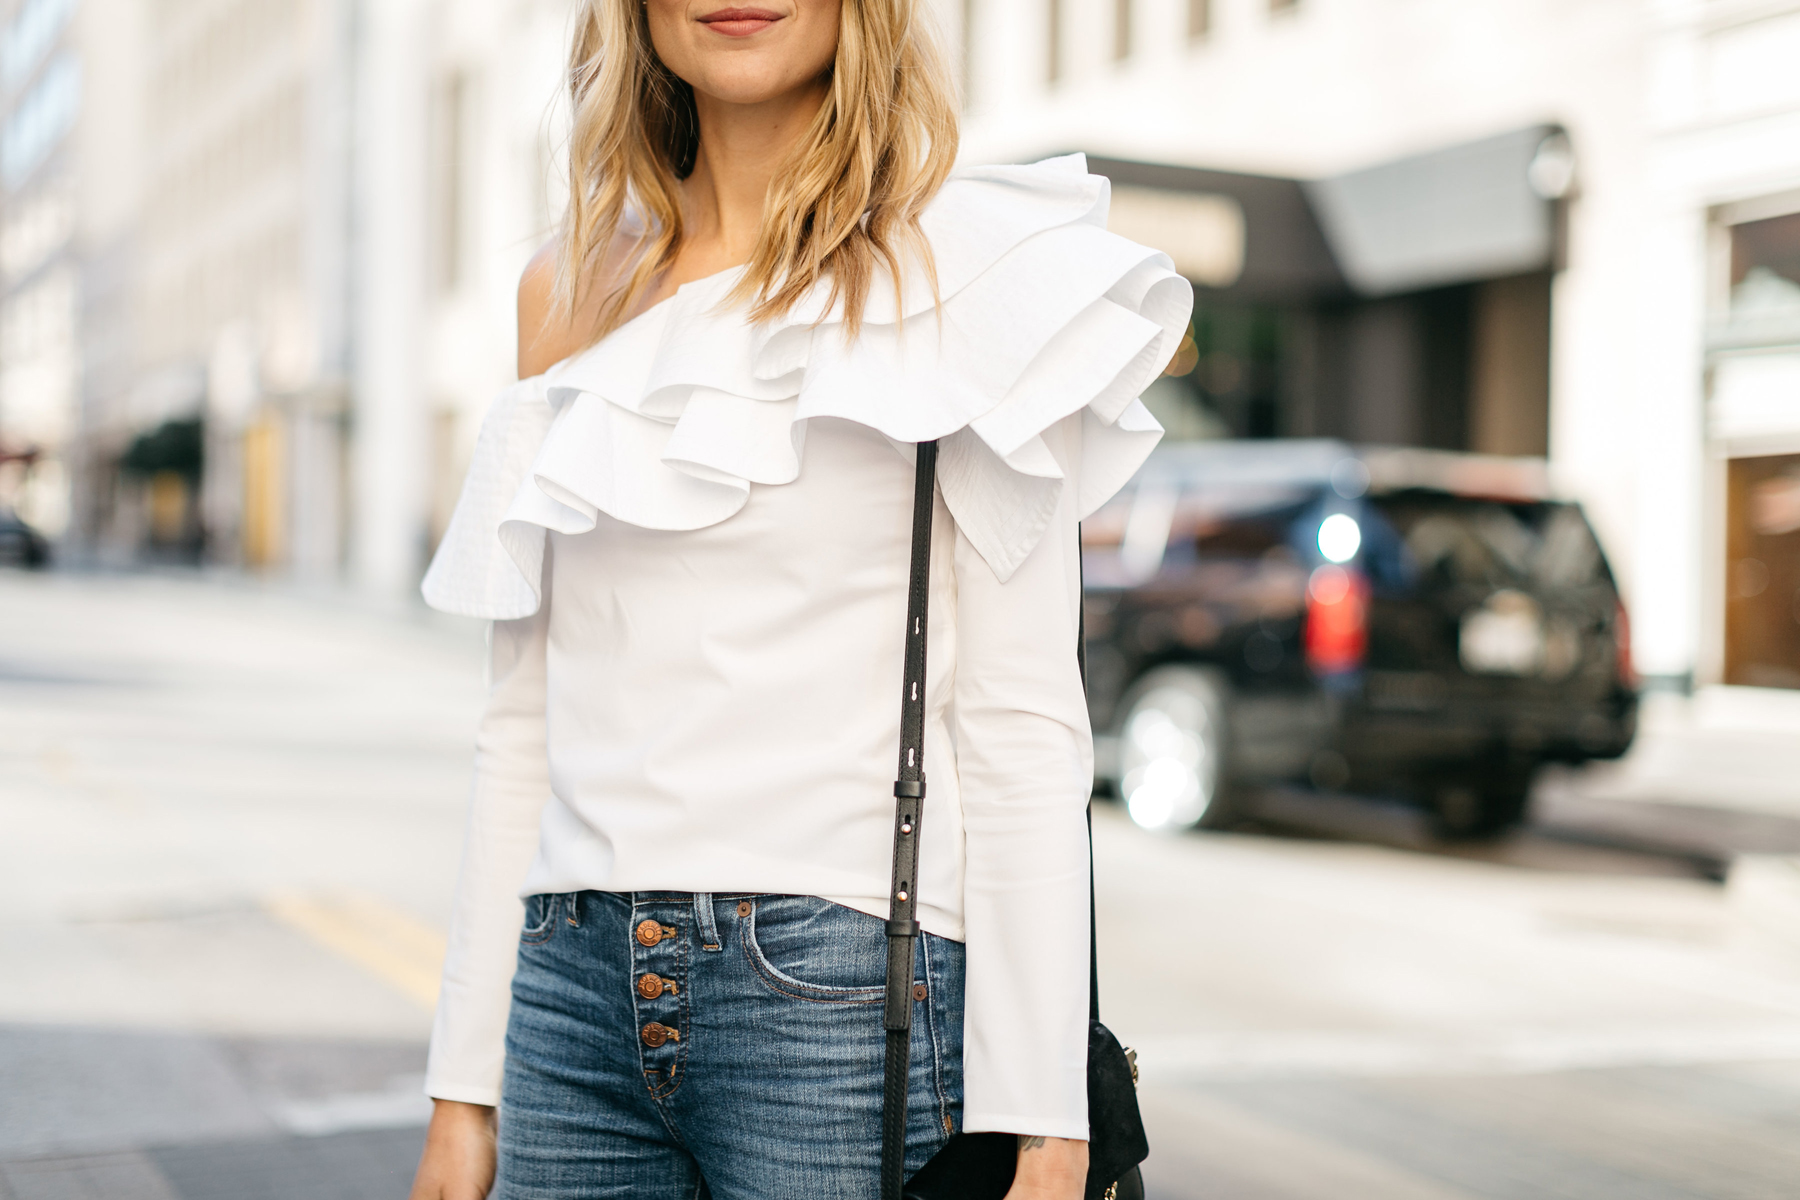 White Ruffle One Shoulder Top, Button Fly Jeans, Chloe Faye Handbag, Fashion Jackson